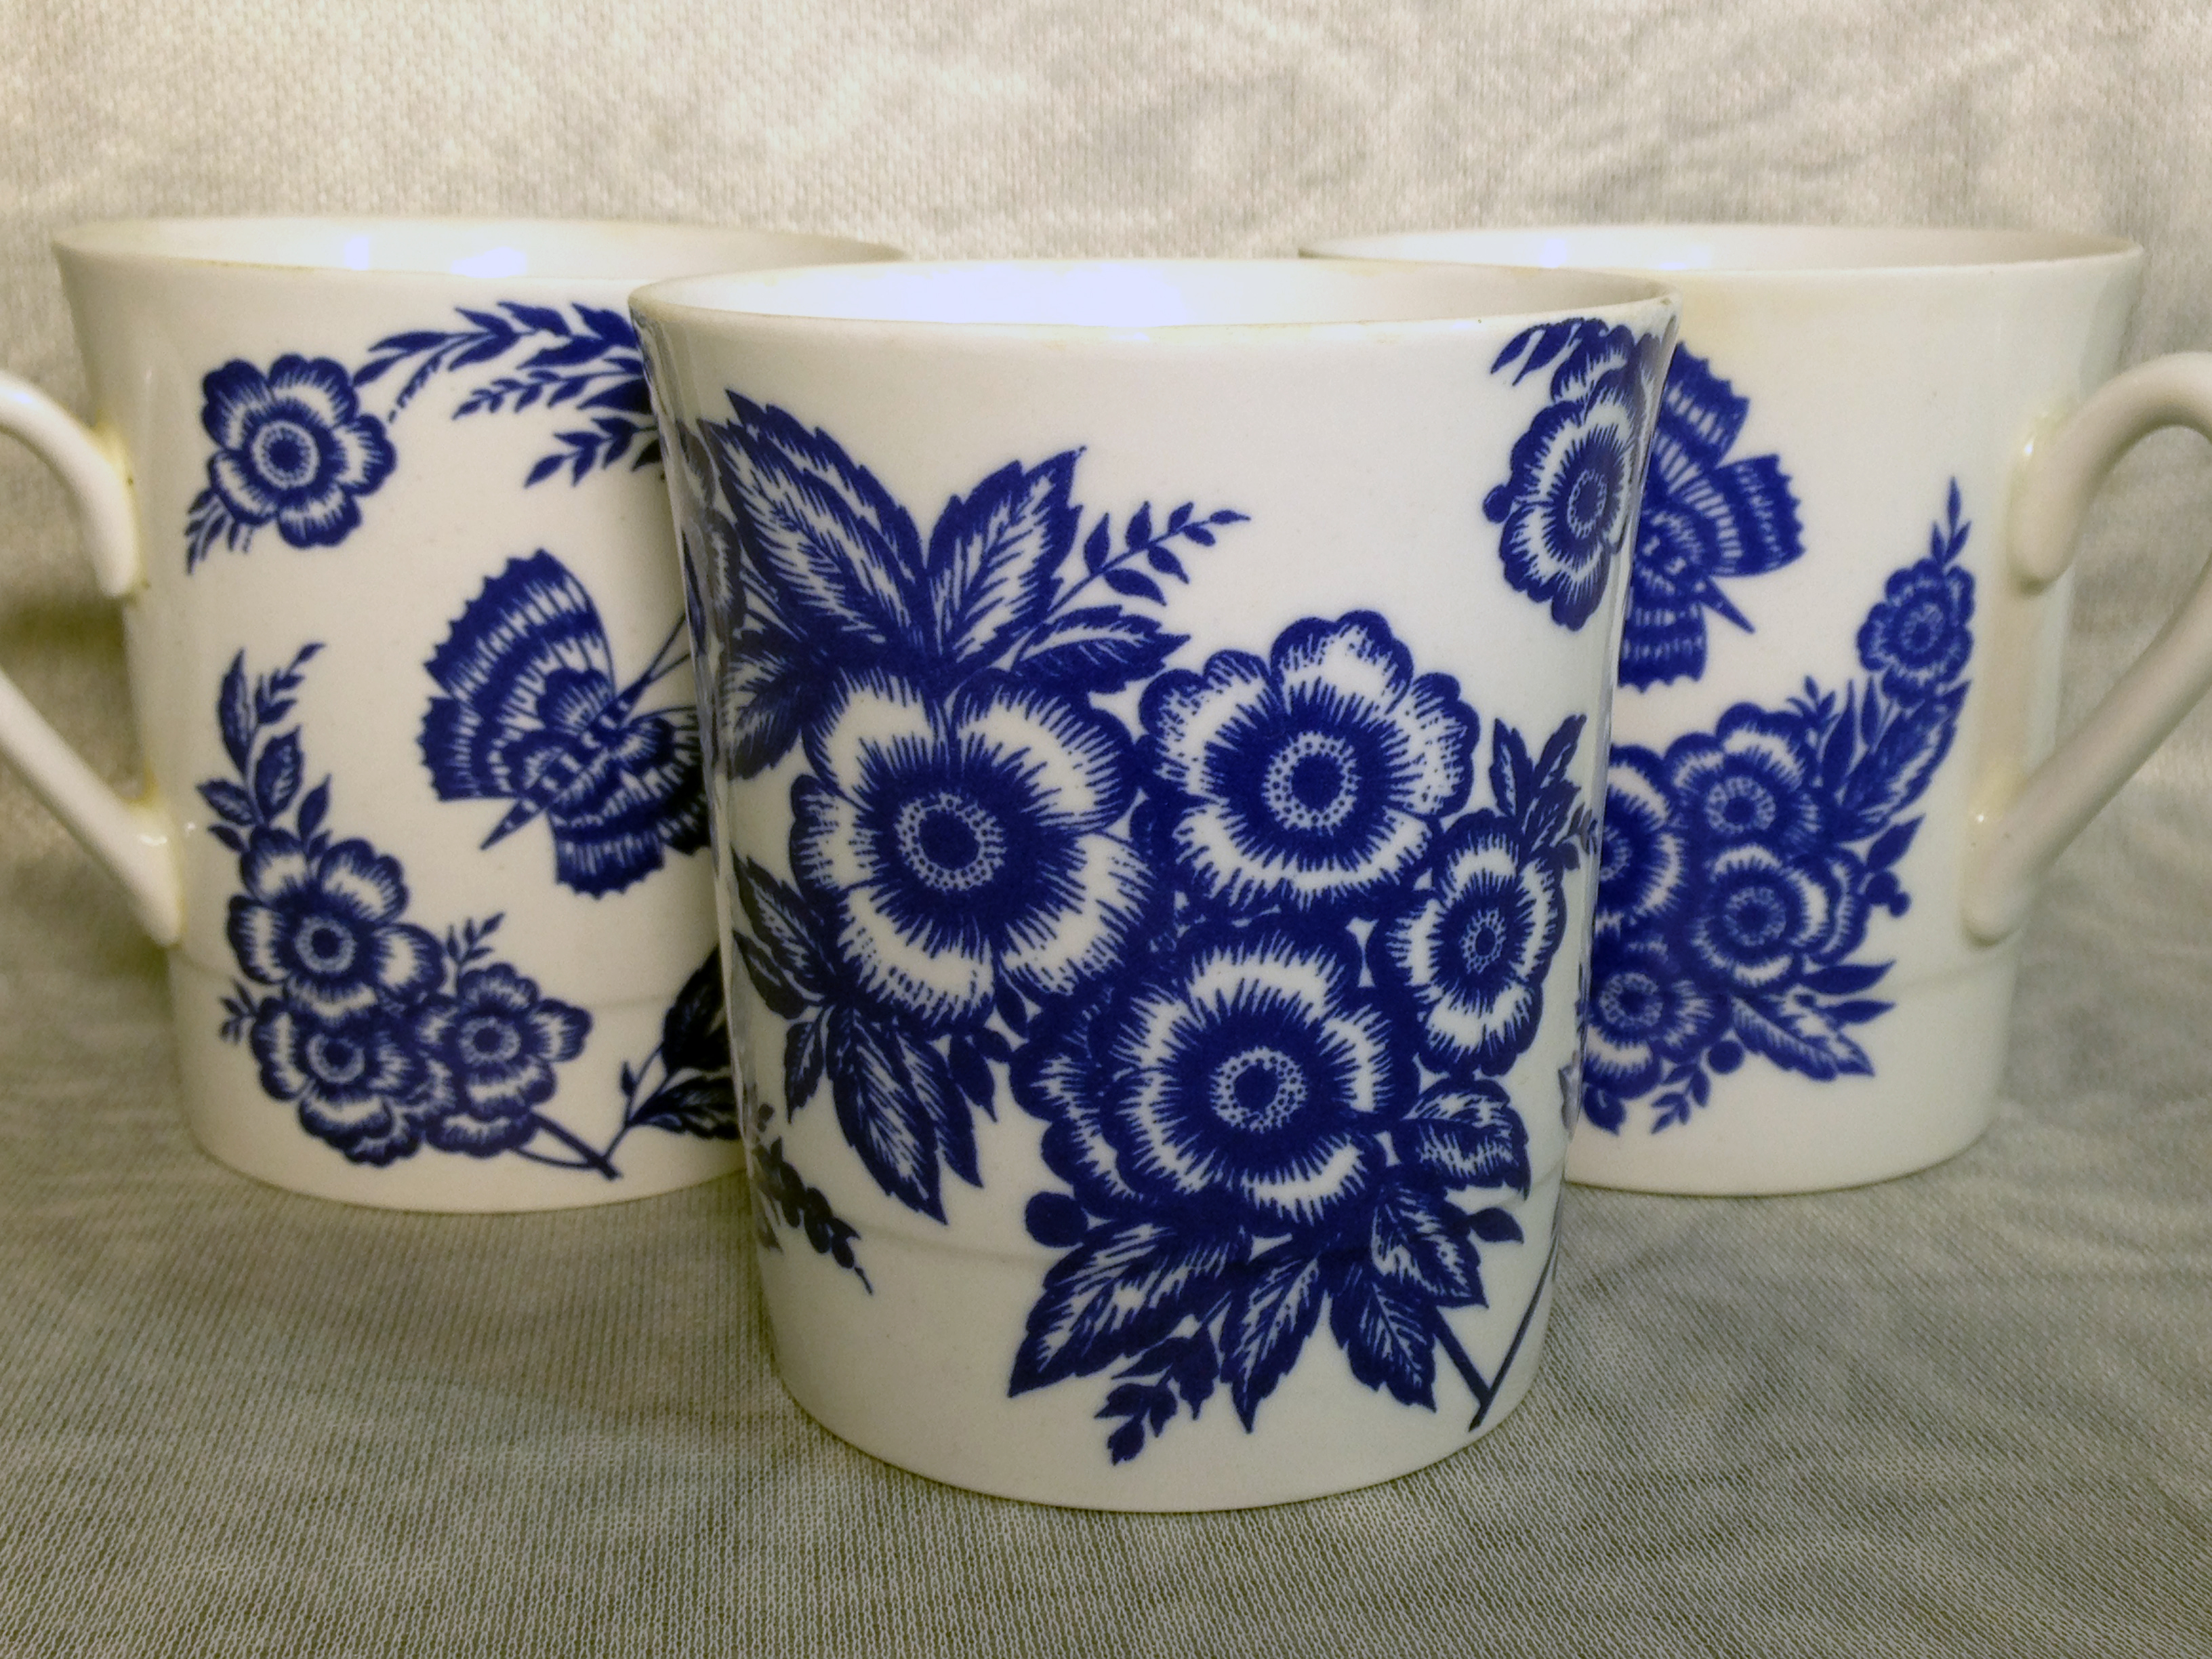 Imperial tea cups in blue and white style